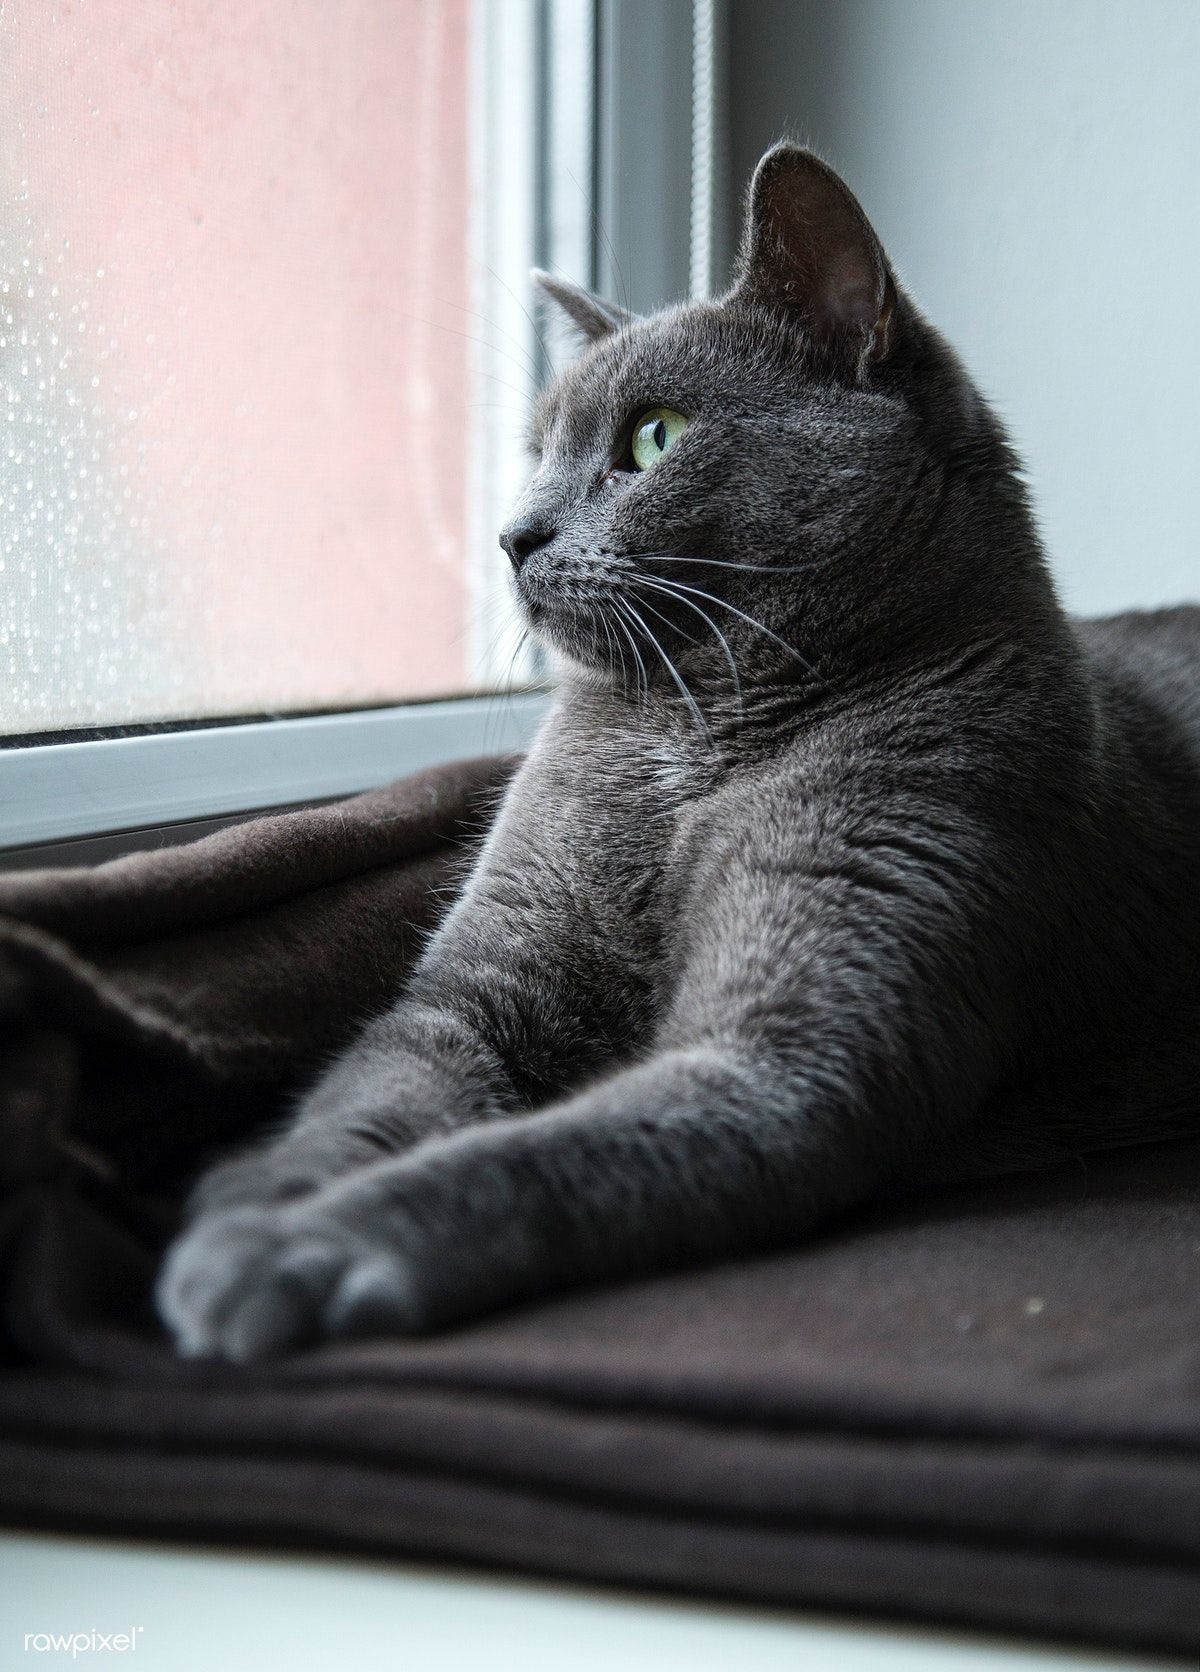 Grey Domestic Cat Looking Out The Window Free Image By Rawpixel Com Milada Vigerova Domestic Cat Cat Design Illustration Cats Illustration